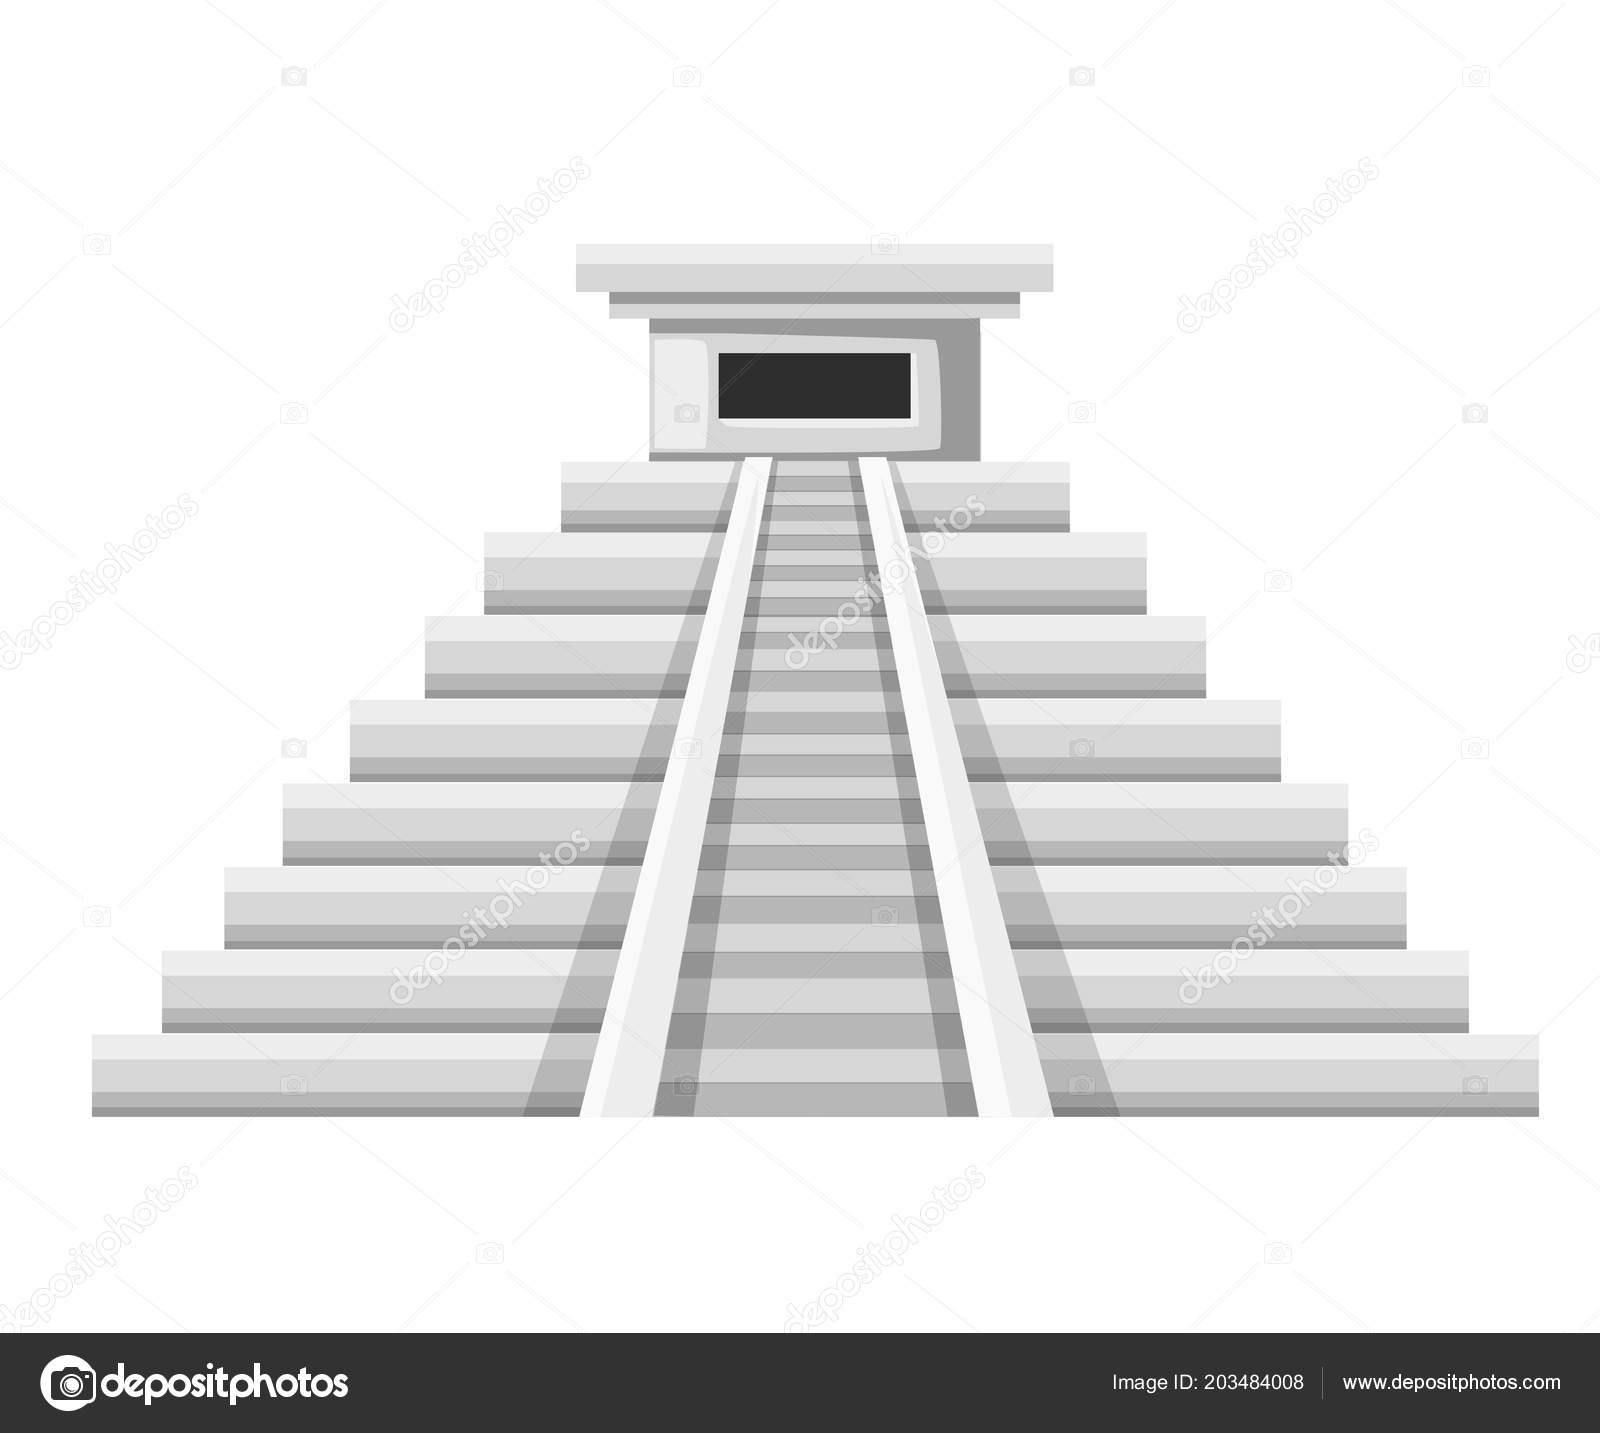 a643bca709ba Aztec Pyramid Icon Flat Vector Illustration Old Stone Temple Mexican ...